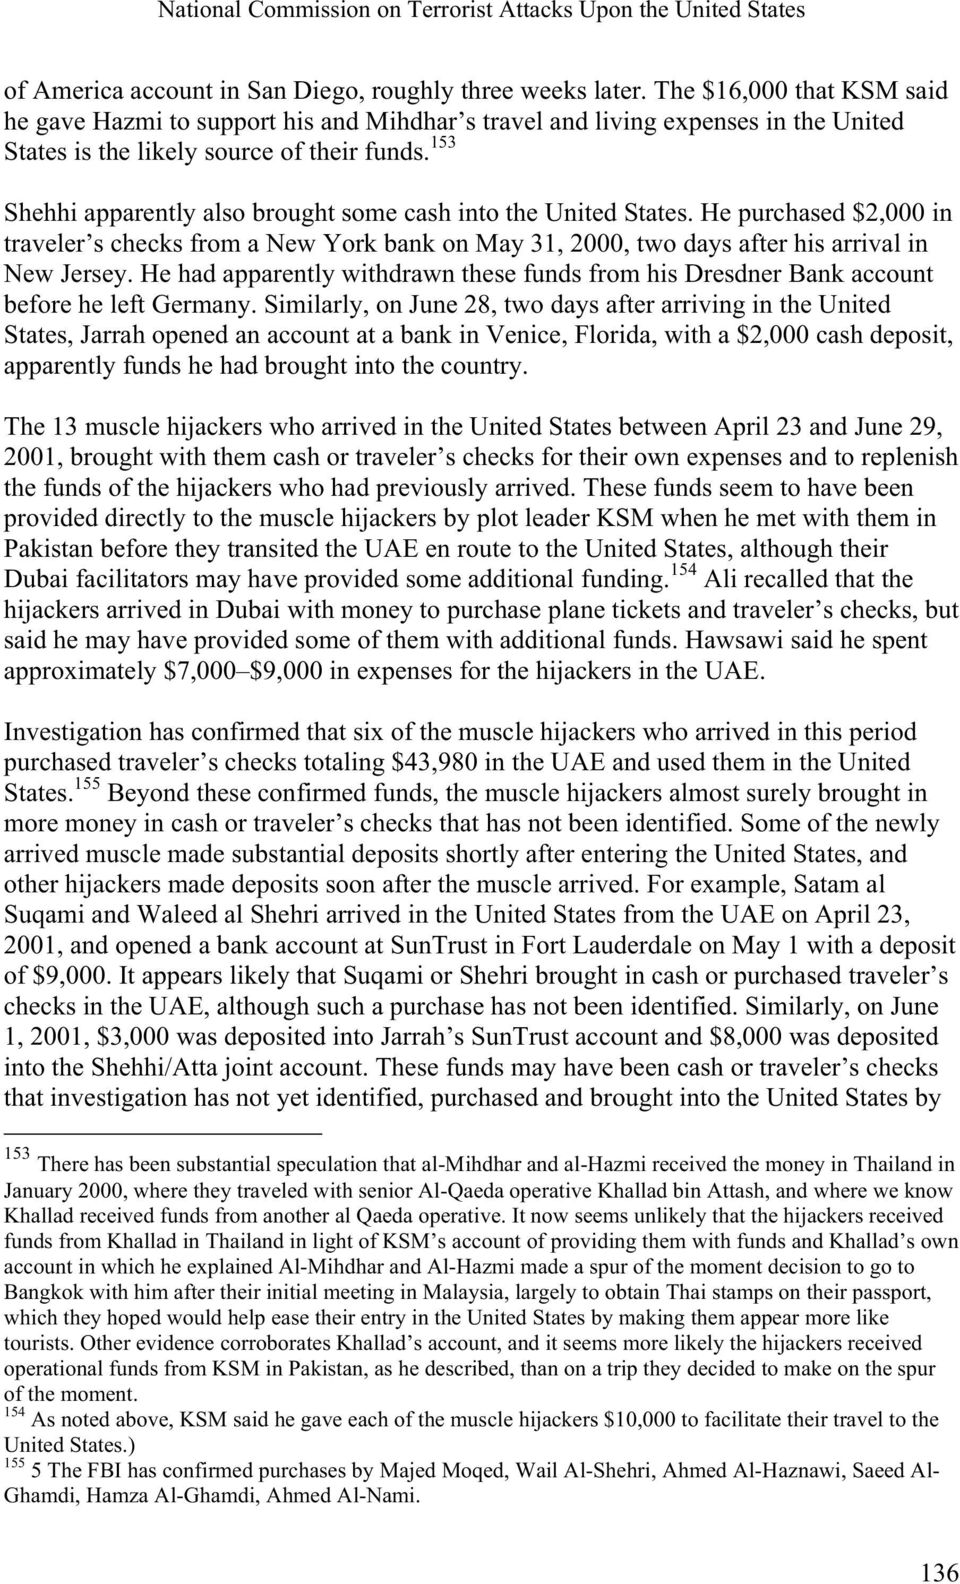 153 Shehhi apparently also brought some cash into the United States. He purchased $2,000 in traveler s checks from a New York bank on May 31, 2000, two days after his arrival in New Jersey.